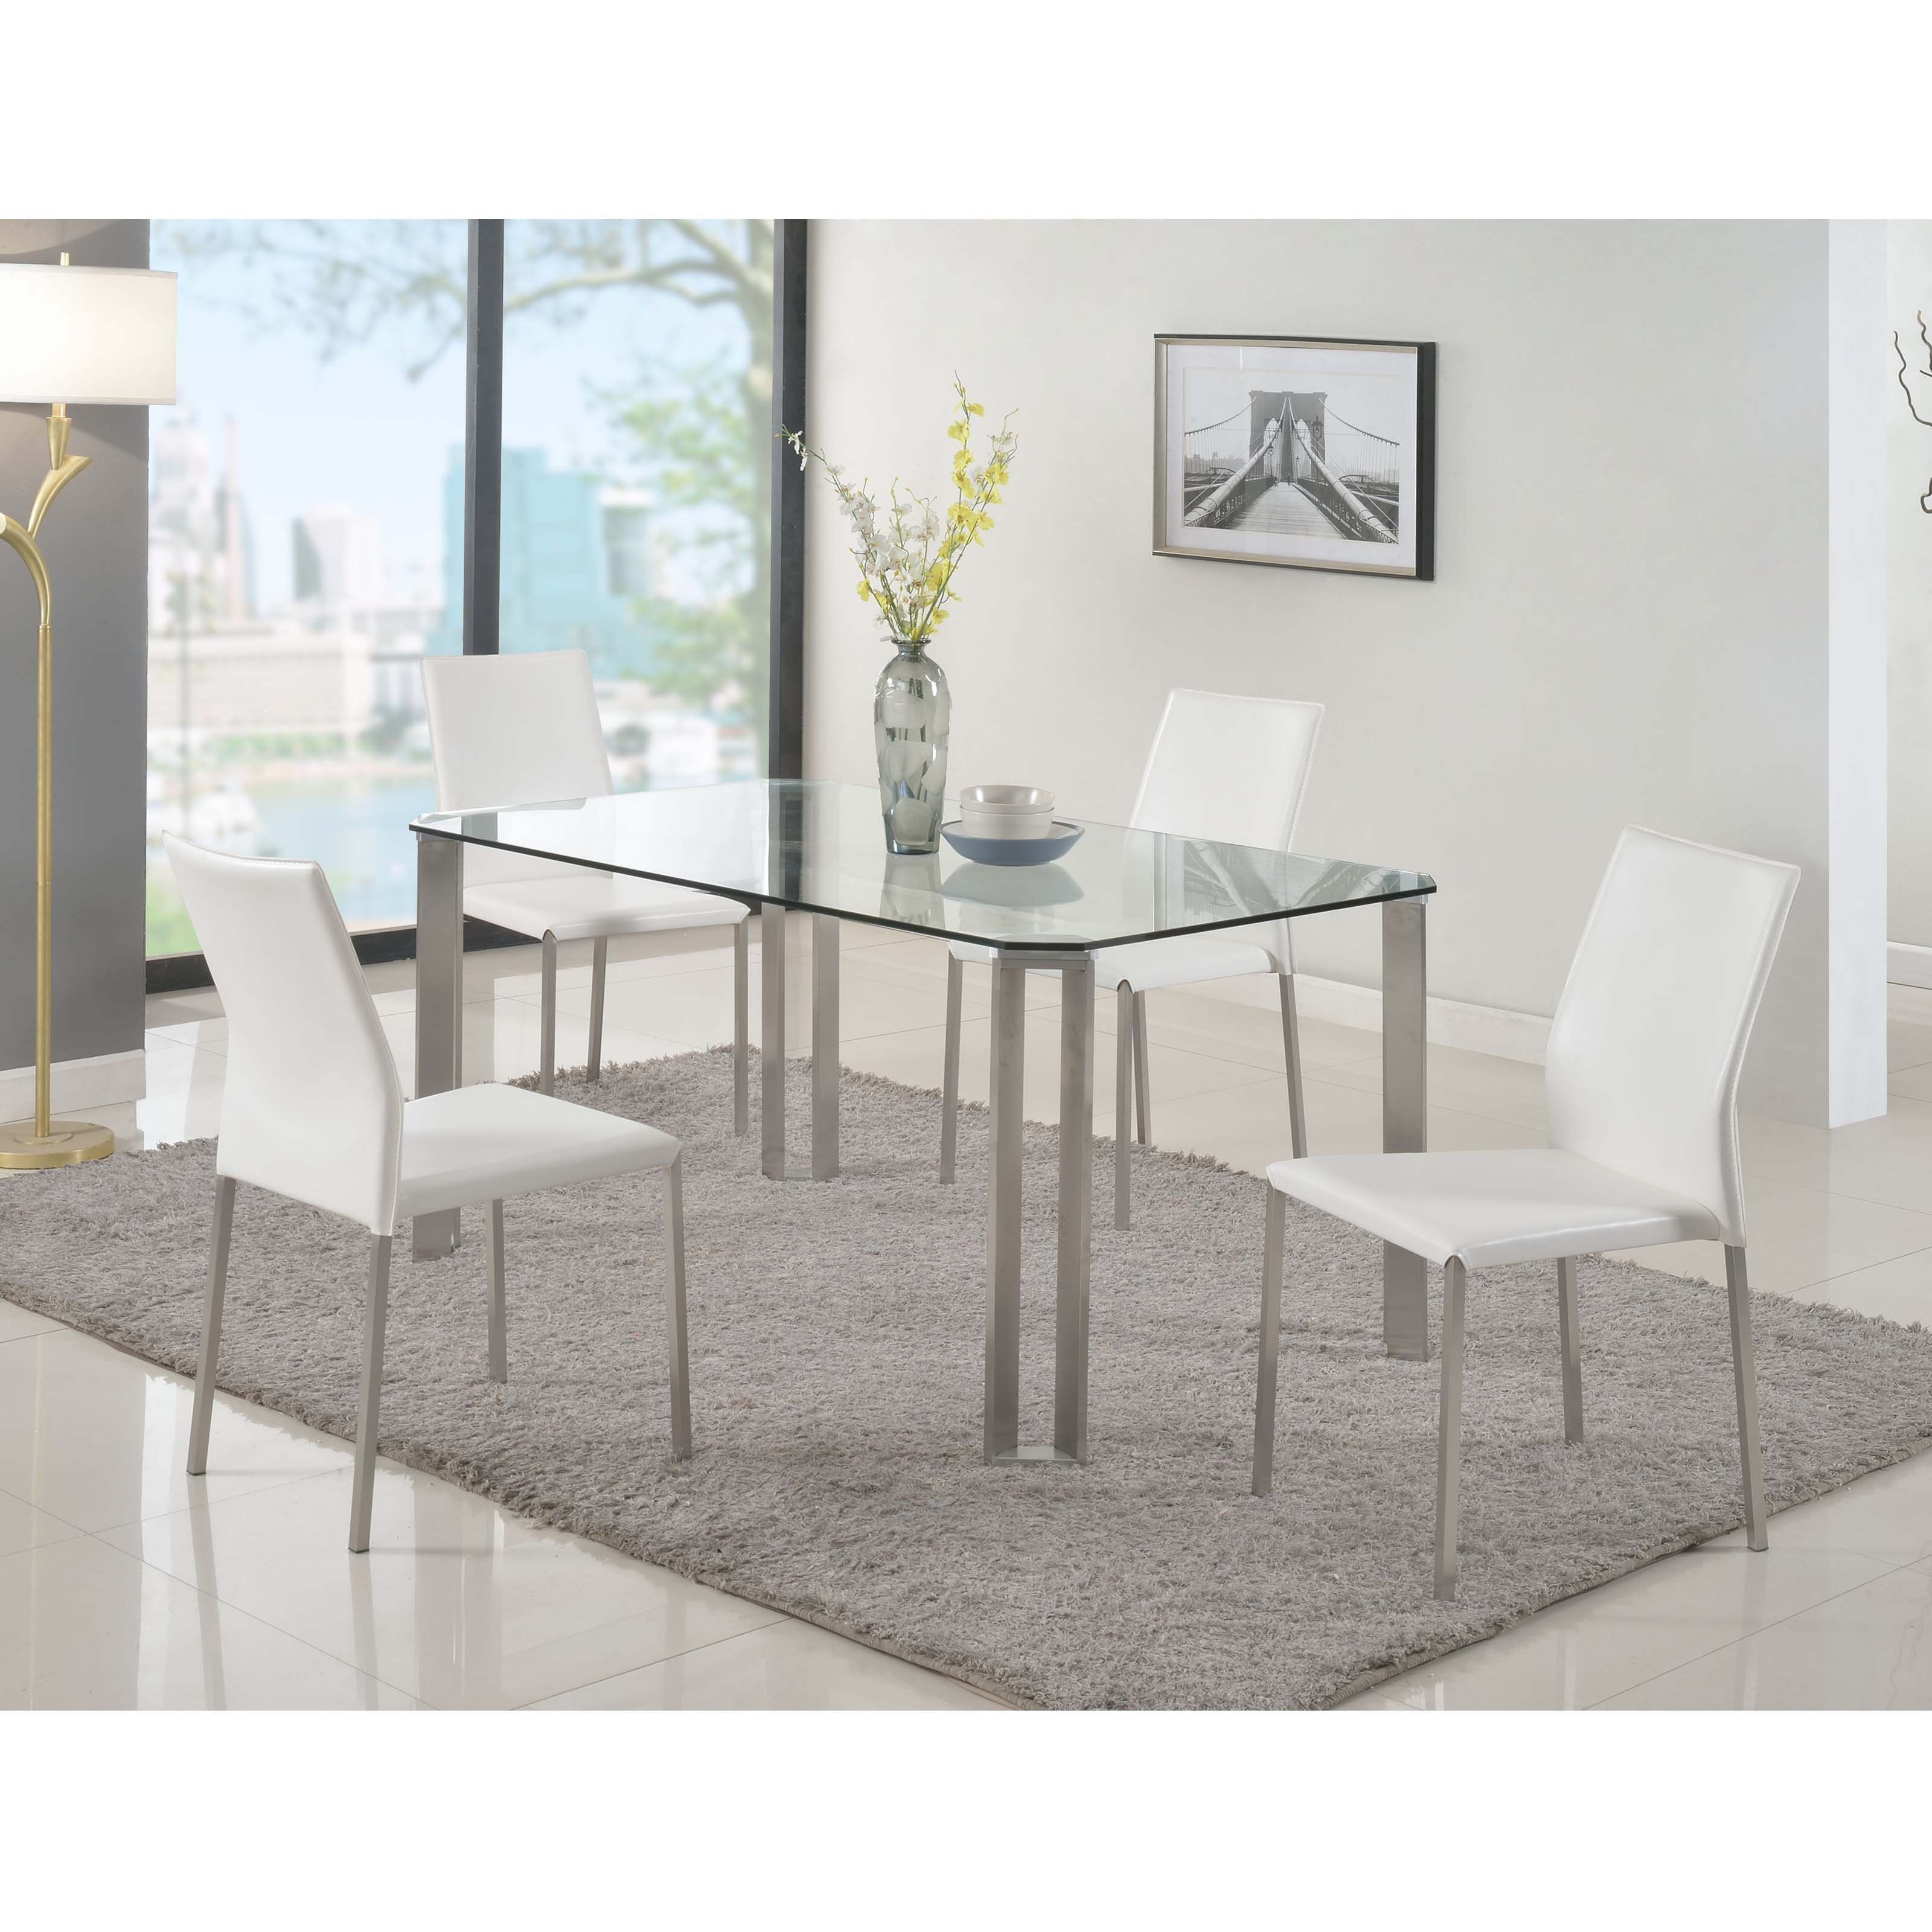 Stainless Steel Dining Room Tables Captivating Chintaly Rhonda 5Piece Dining Table Set  Cty2100  Products Design Inspiration